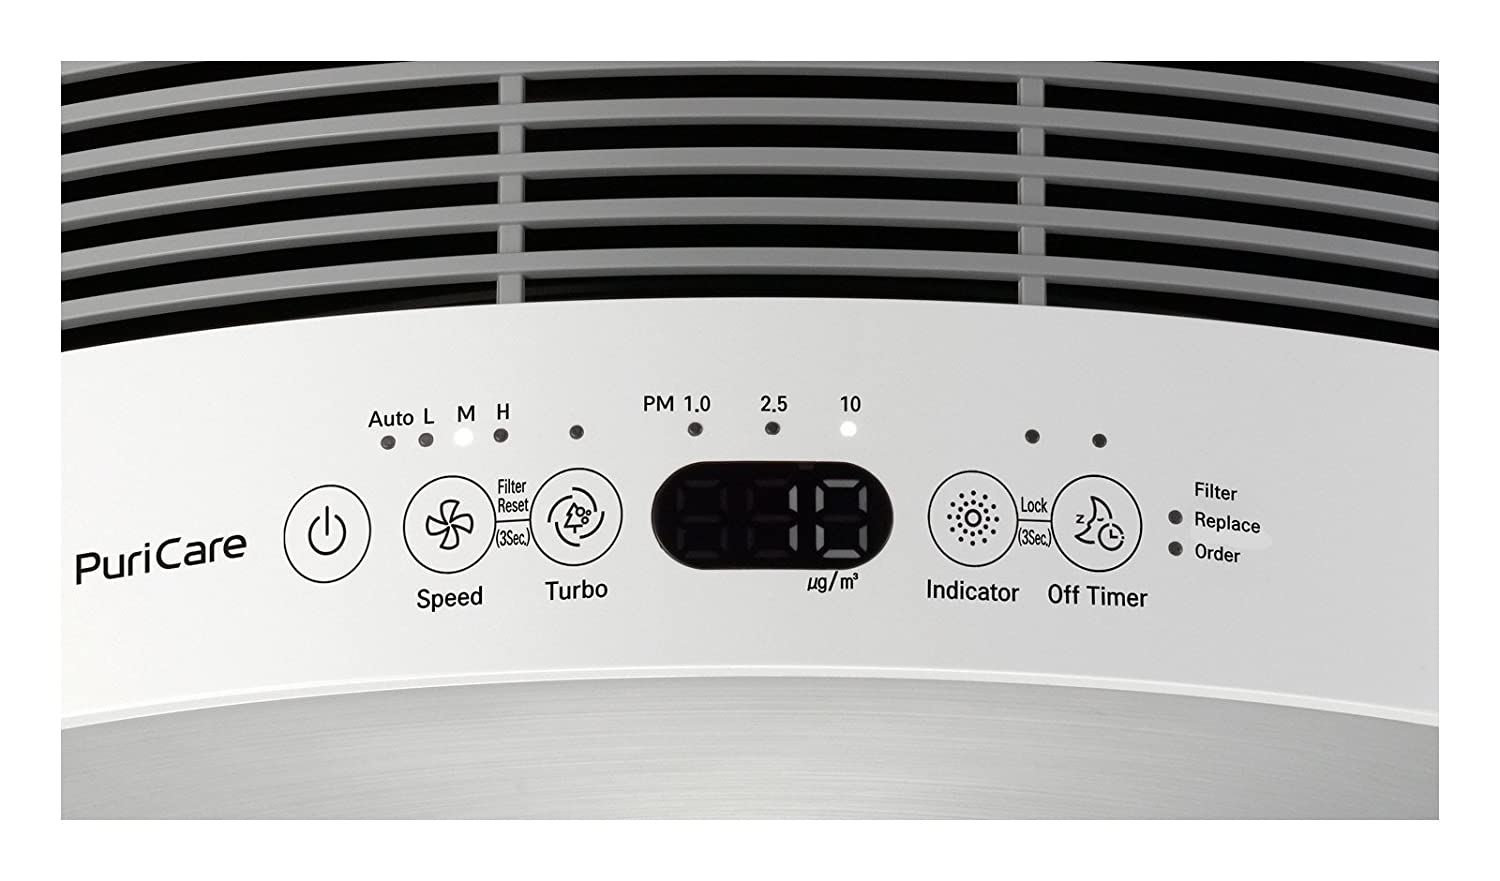 Amazon.com: LG AS401VSA0 Puricare Filter Air Purifier with Smart Air Quality Sensor & Lodecibel Operation, Brushed Silver (Certified Refurbished): Home & ...